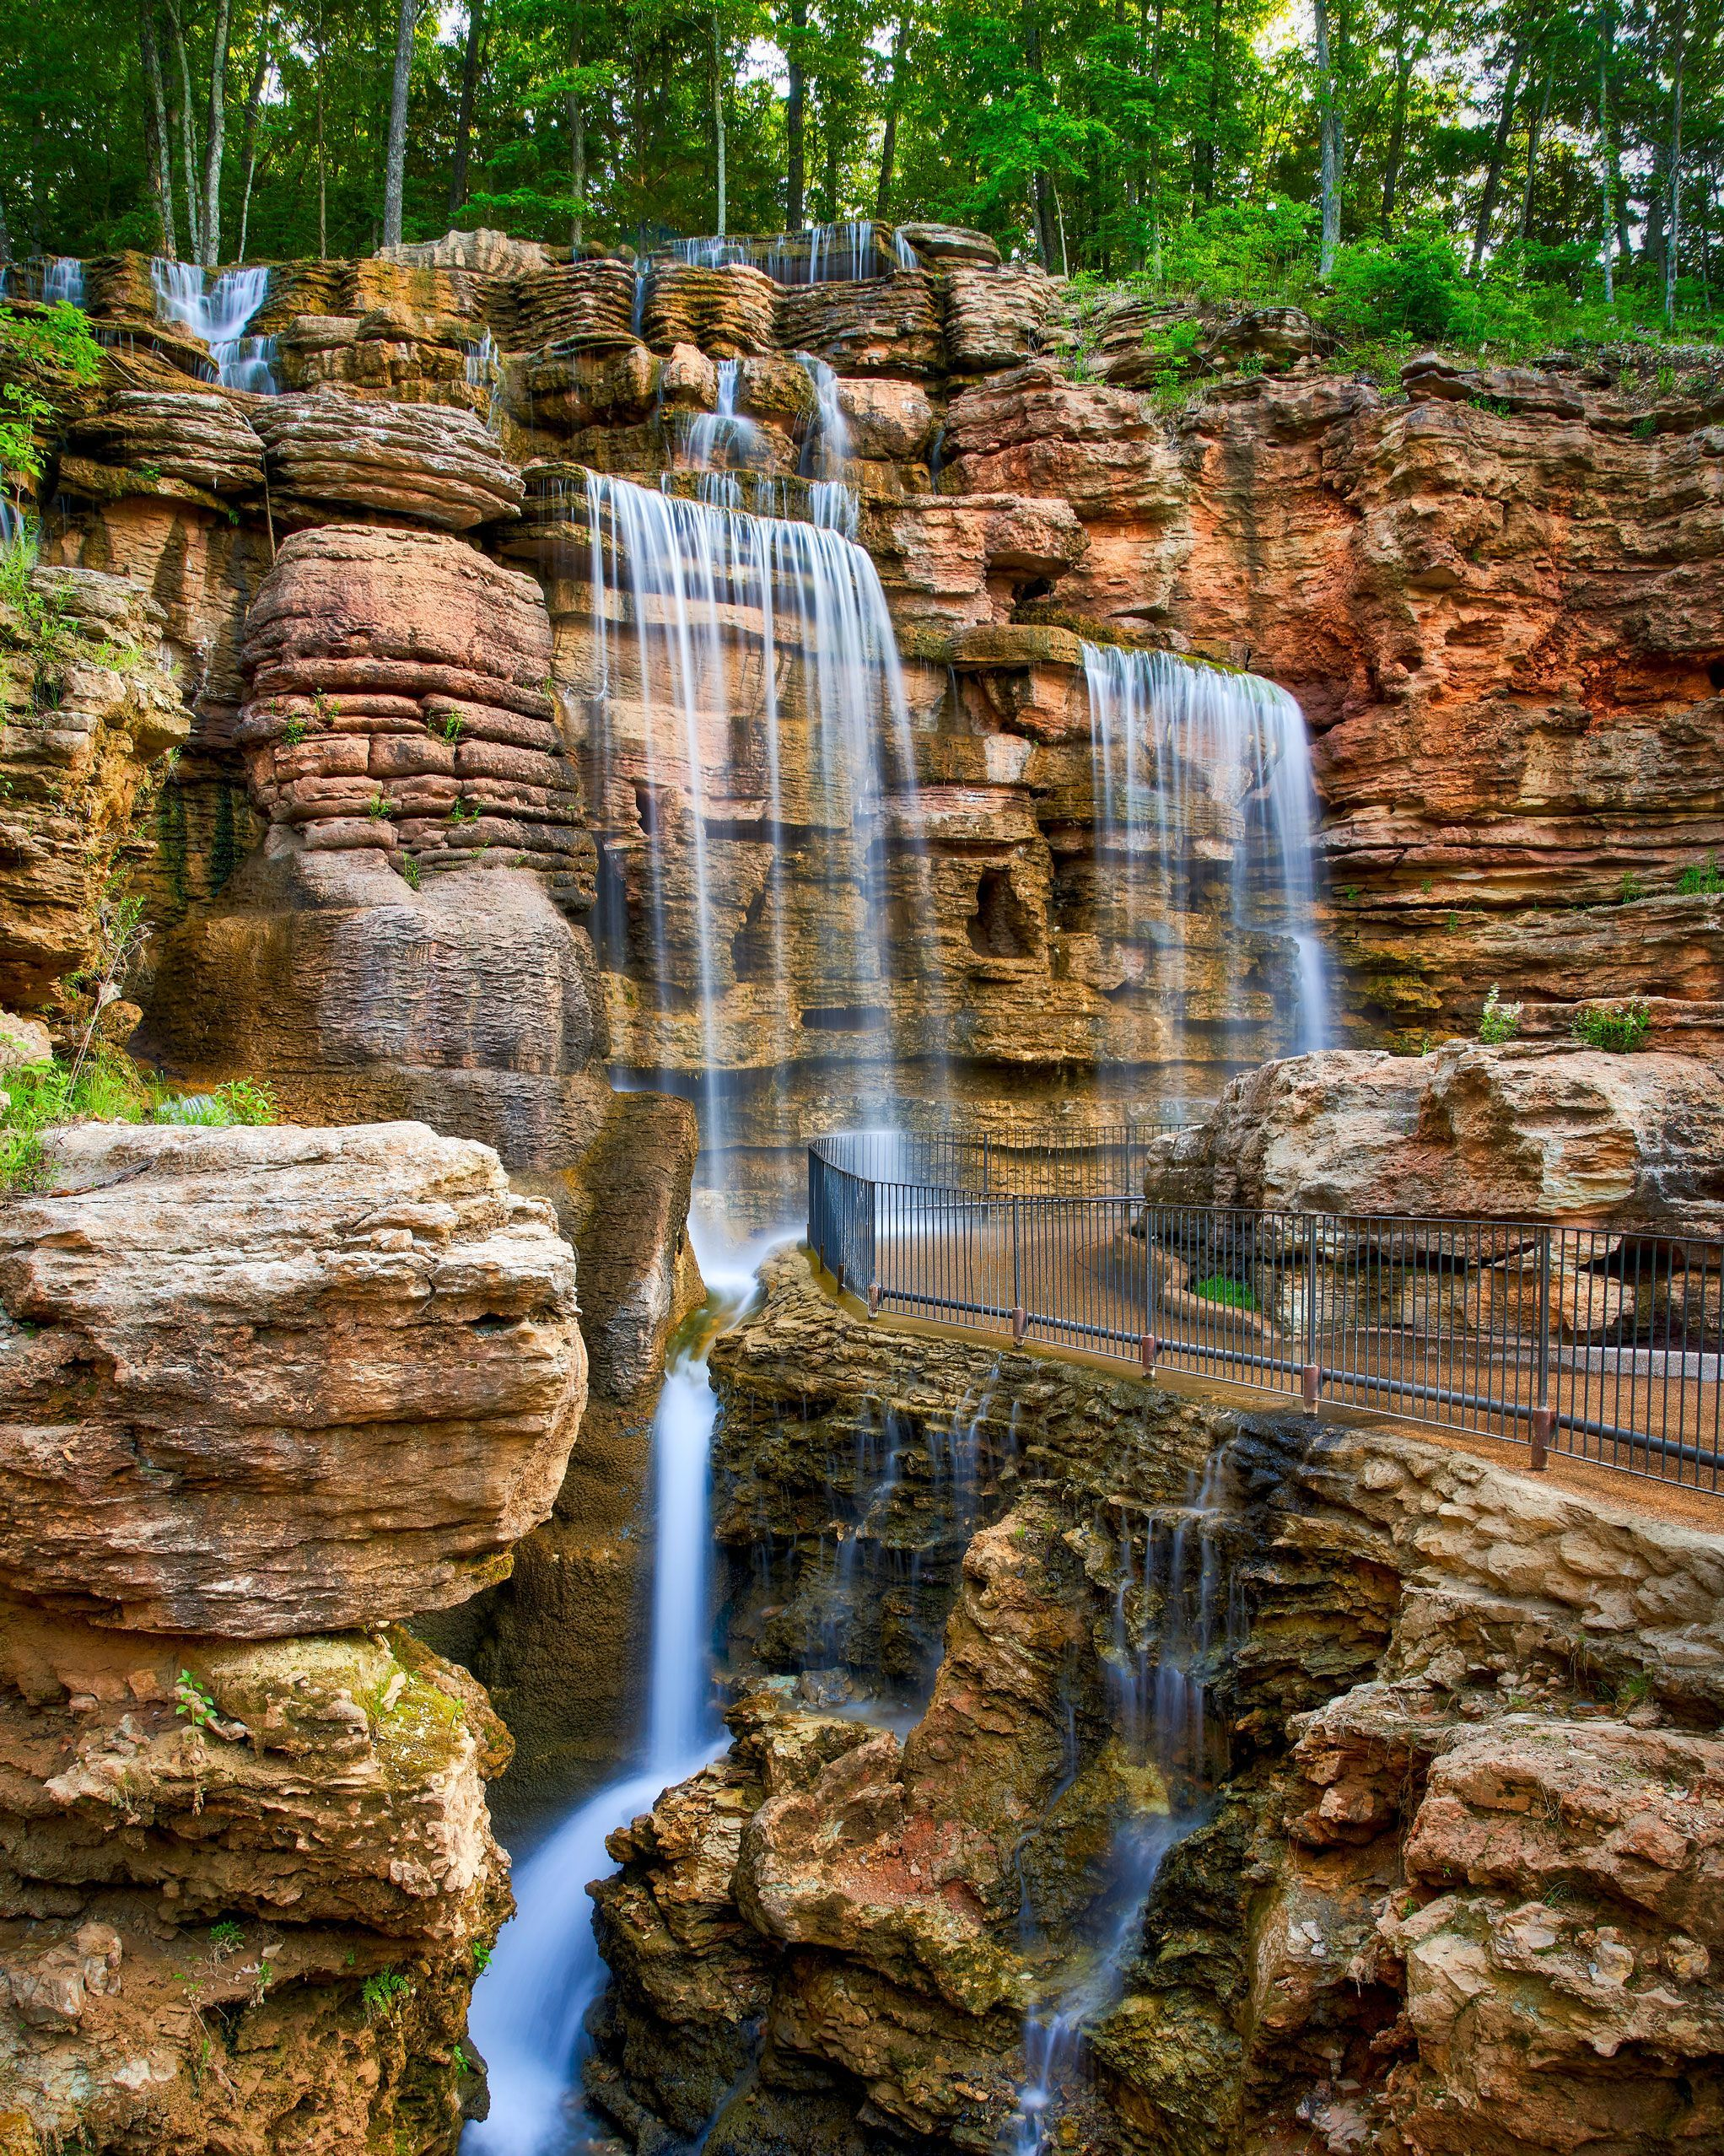 Top Of The Rock Attractions Big Cedar Lodge Near Branson Mo Dogwood Canyon Missouri State Parks Vacation Destinations